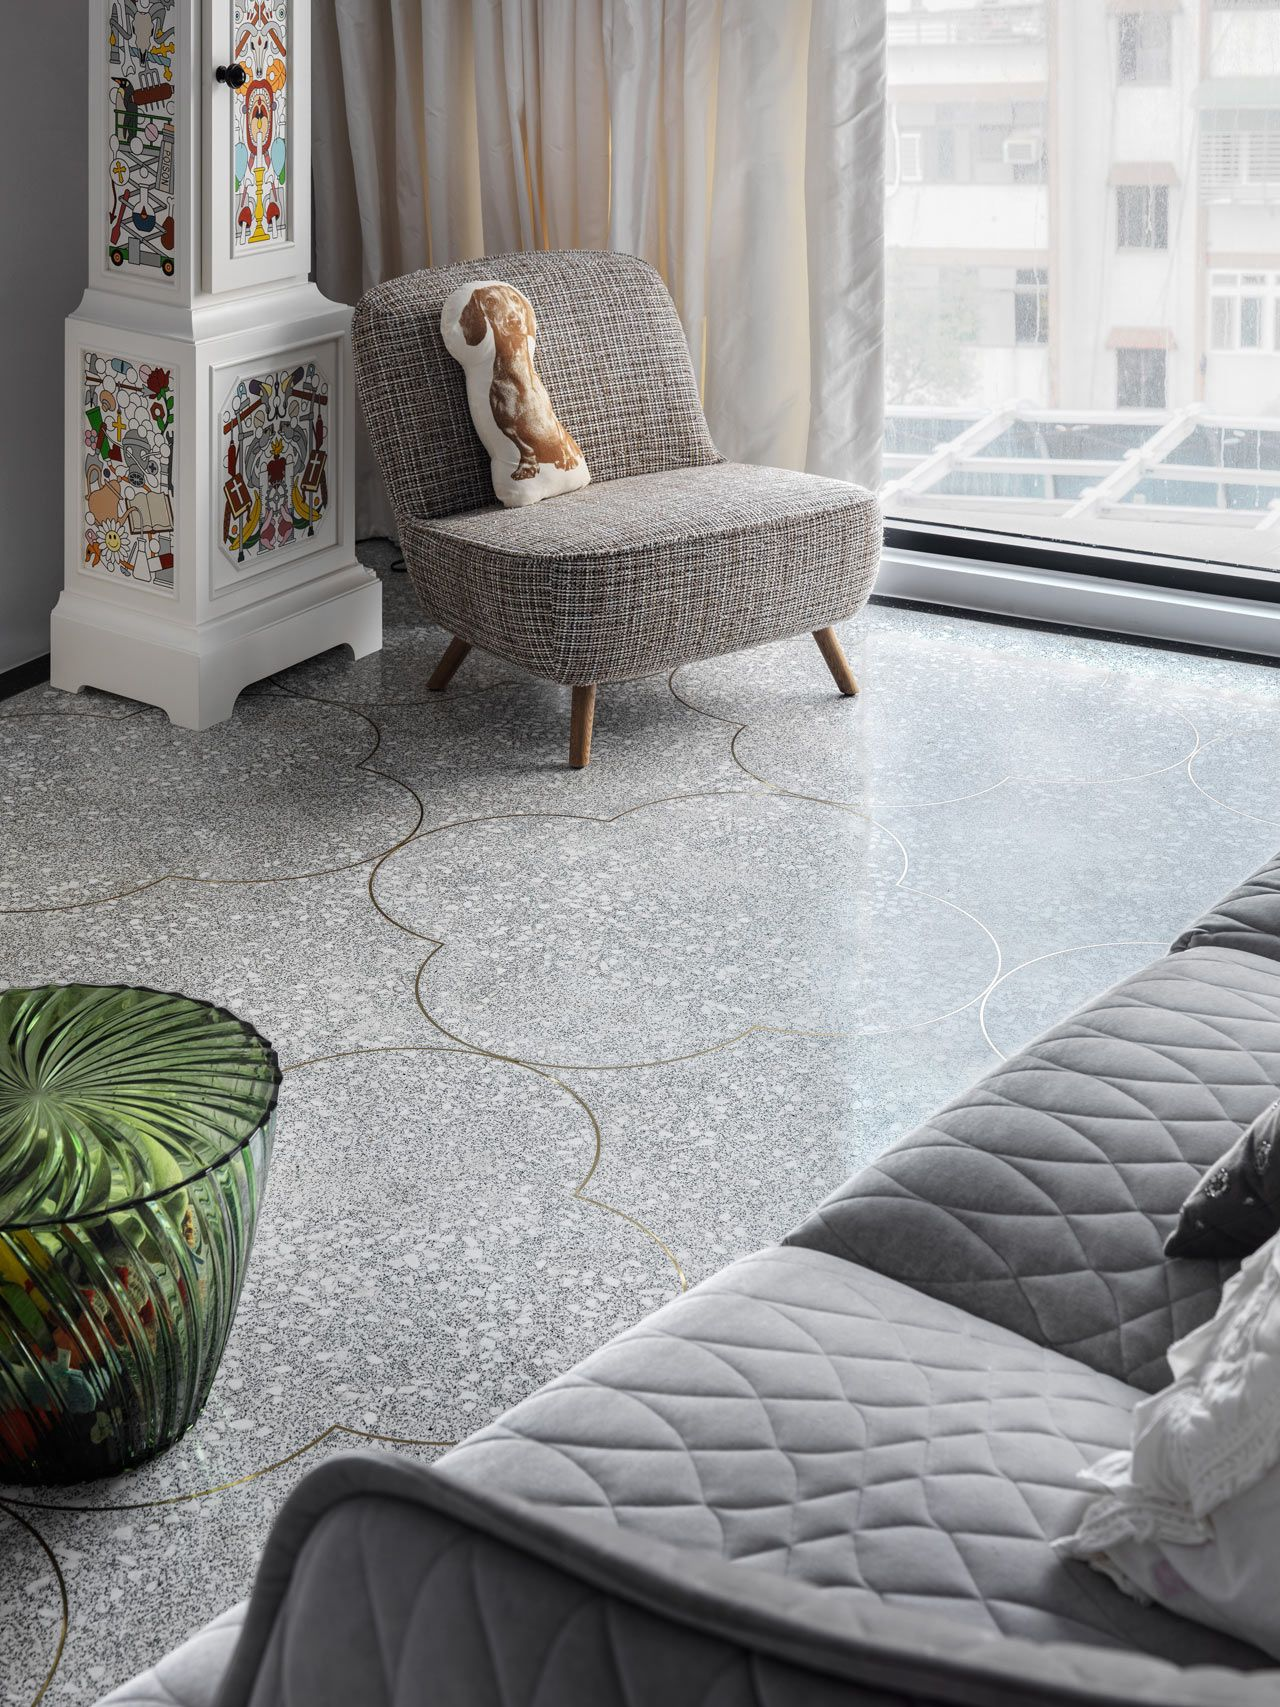 Divider Strips In Terrazzo Floor Form The Decorative Pattern